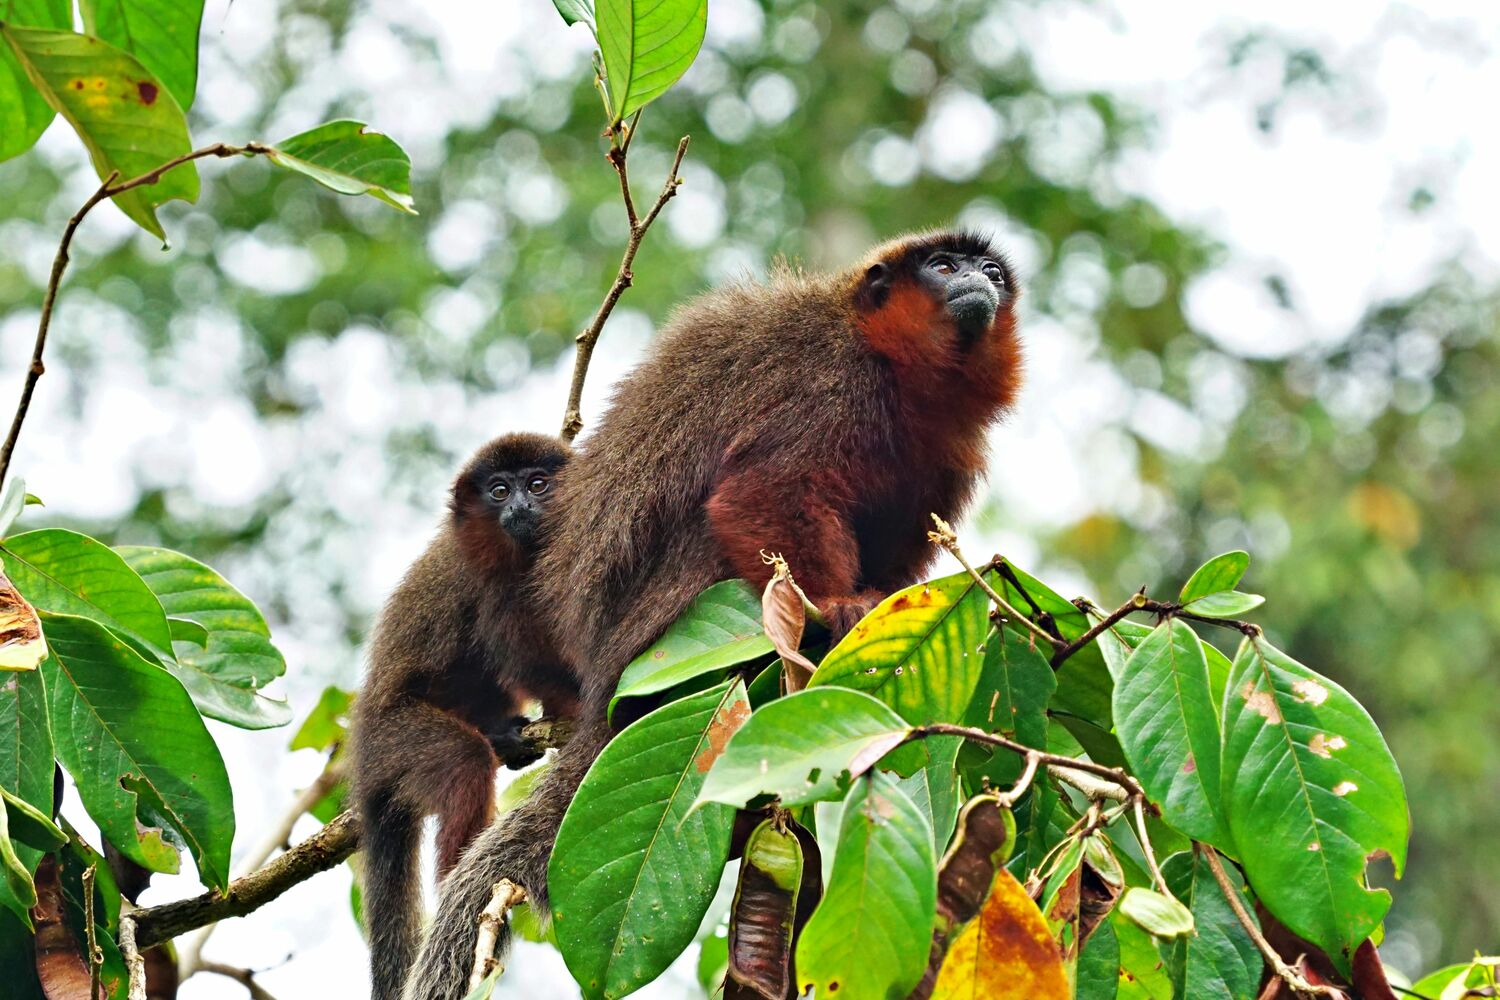 This young coppery titi monkey (Plecturocebus cupreus) benefits from paternal care. The males of the pair living titi monkeys are primarily taking care of the offspring.